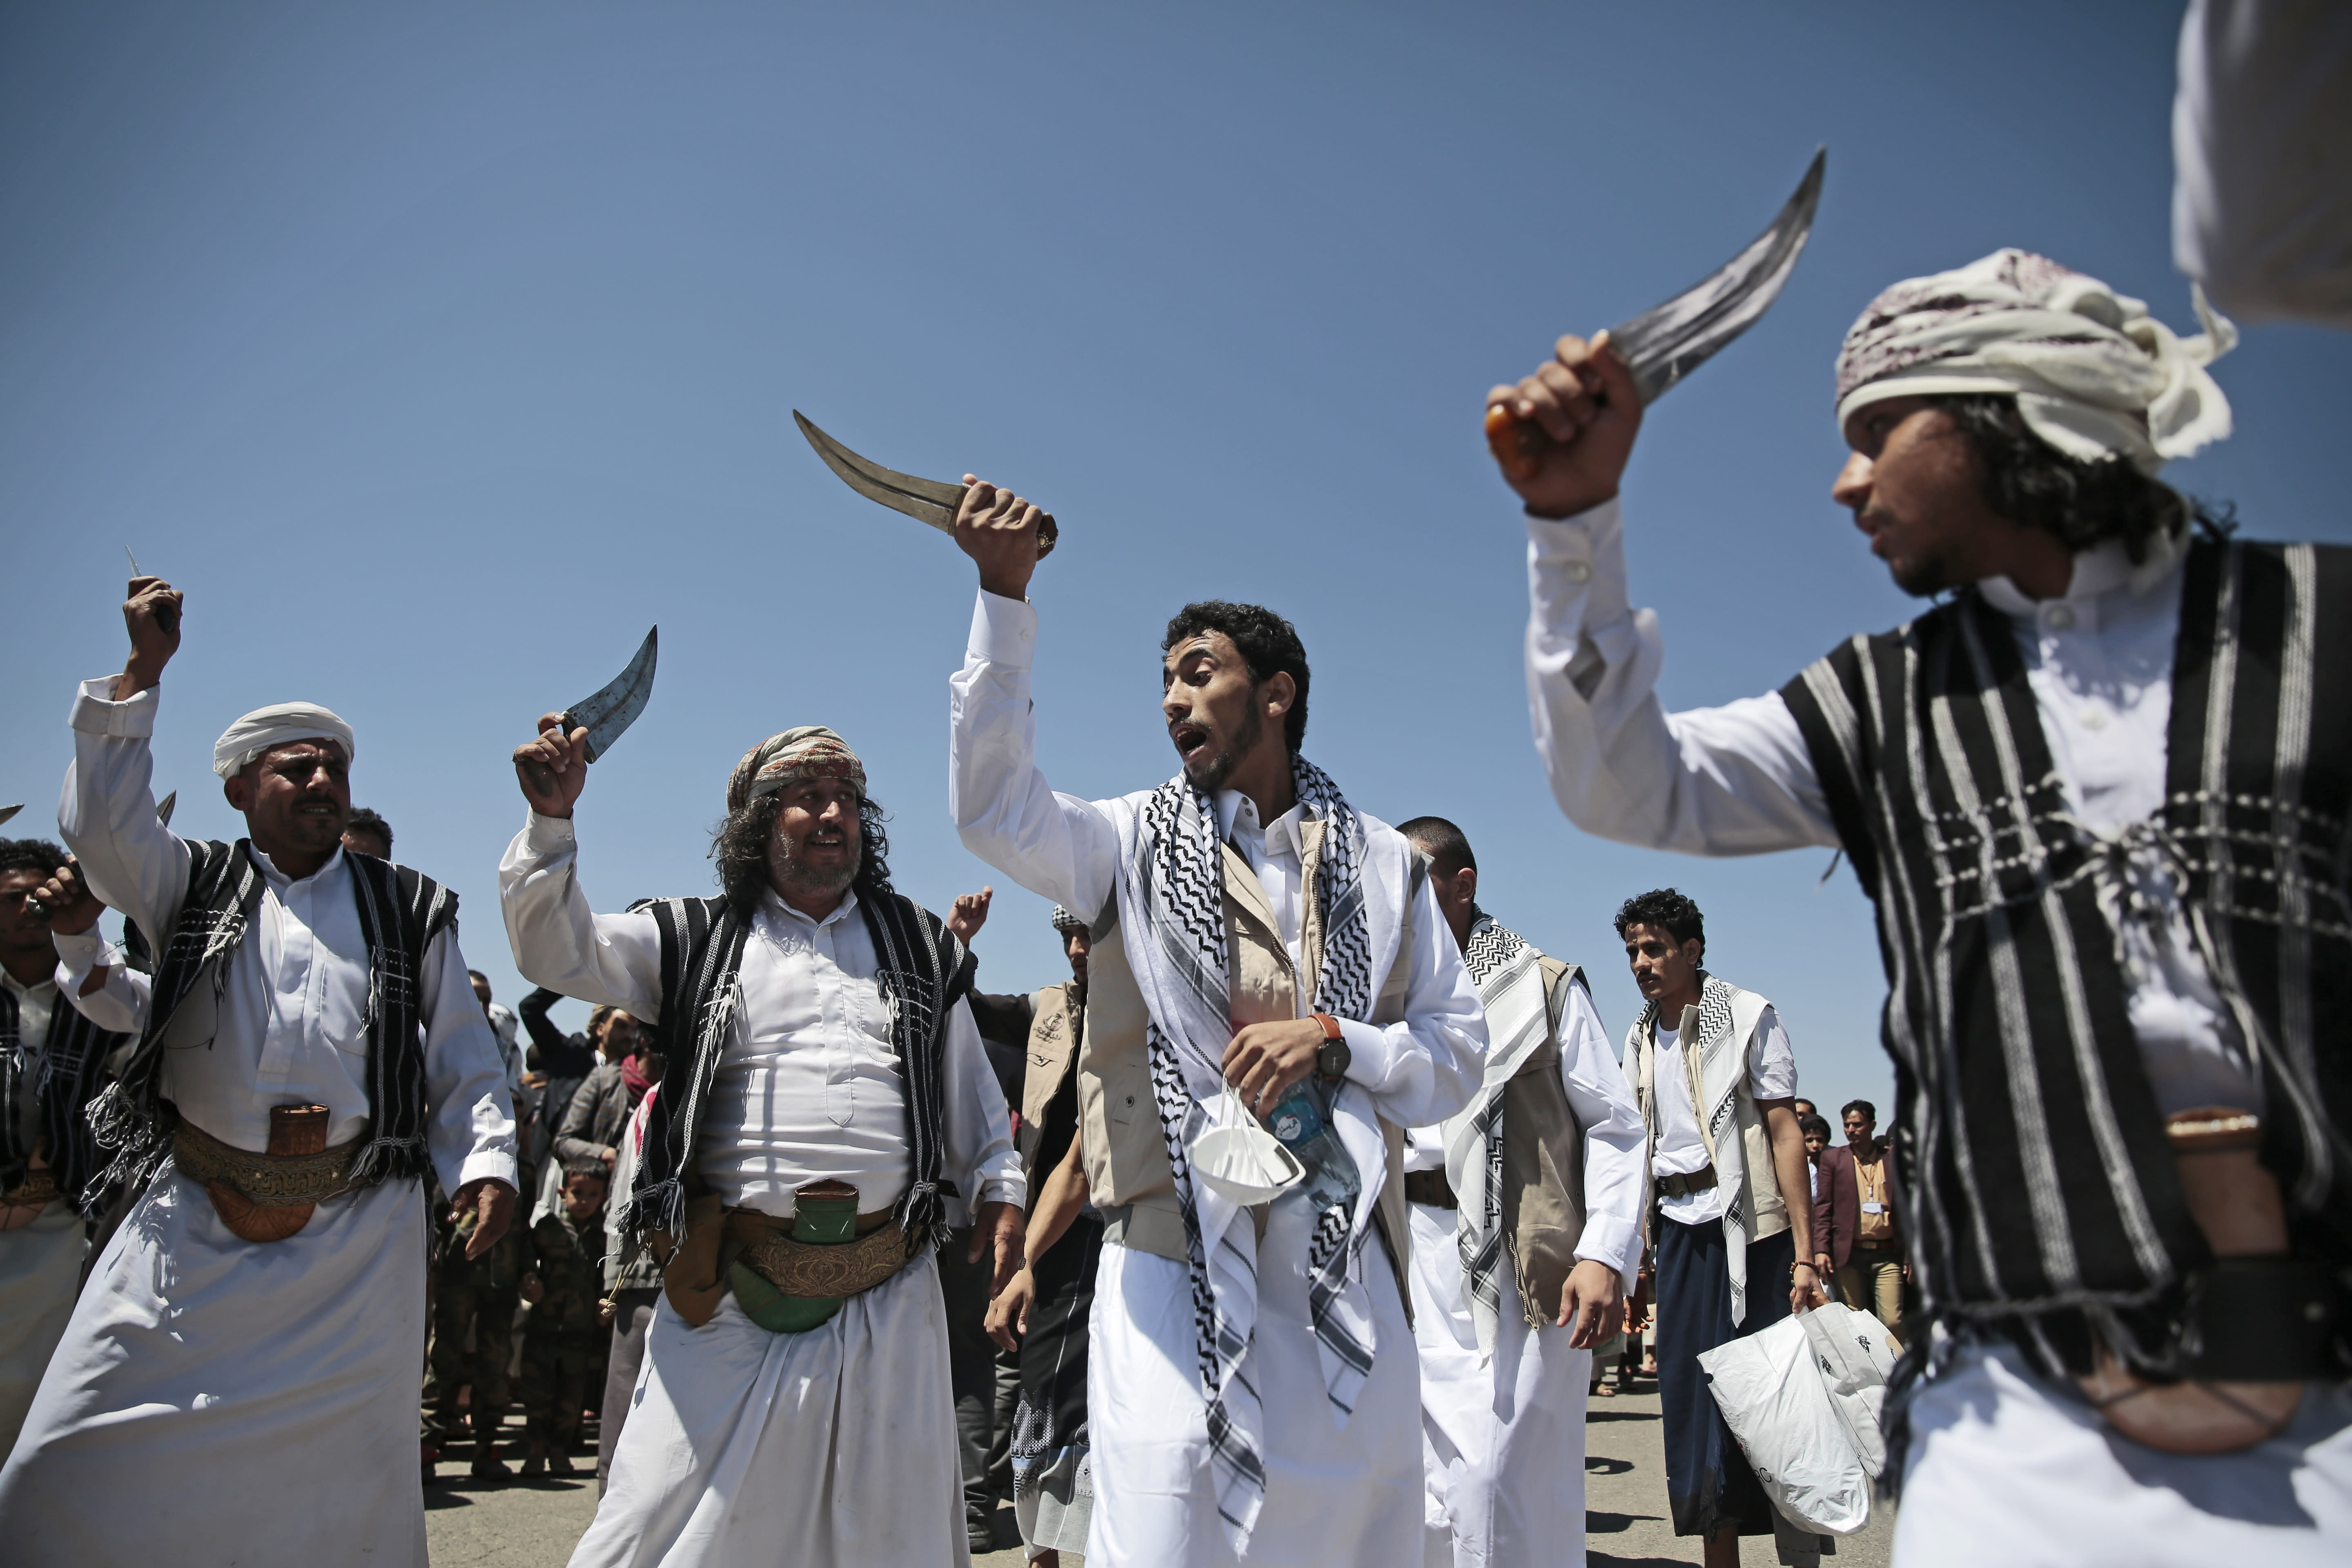 A Yemeni prisoner, center, performs a traditional dance during his arrival after being released by the Saudi-led coalition at the airport in Sanaa, Yemen, Friday, Oct. 16, 2020. Yemen's warring sides completed a major, U.N.-brokered prisoner swap on Friday, officials said, a development that could revive the country's stalled peace process after more than five years of grinding conflict. (AP Photo/Hani Mohammed)